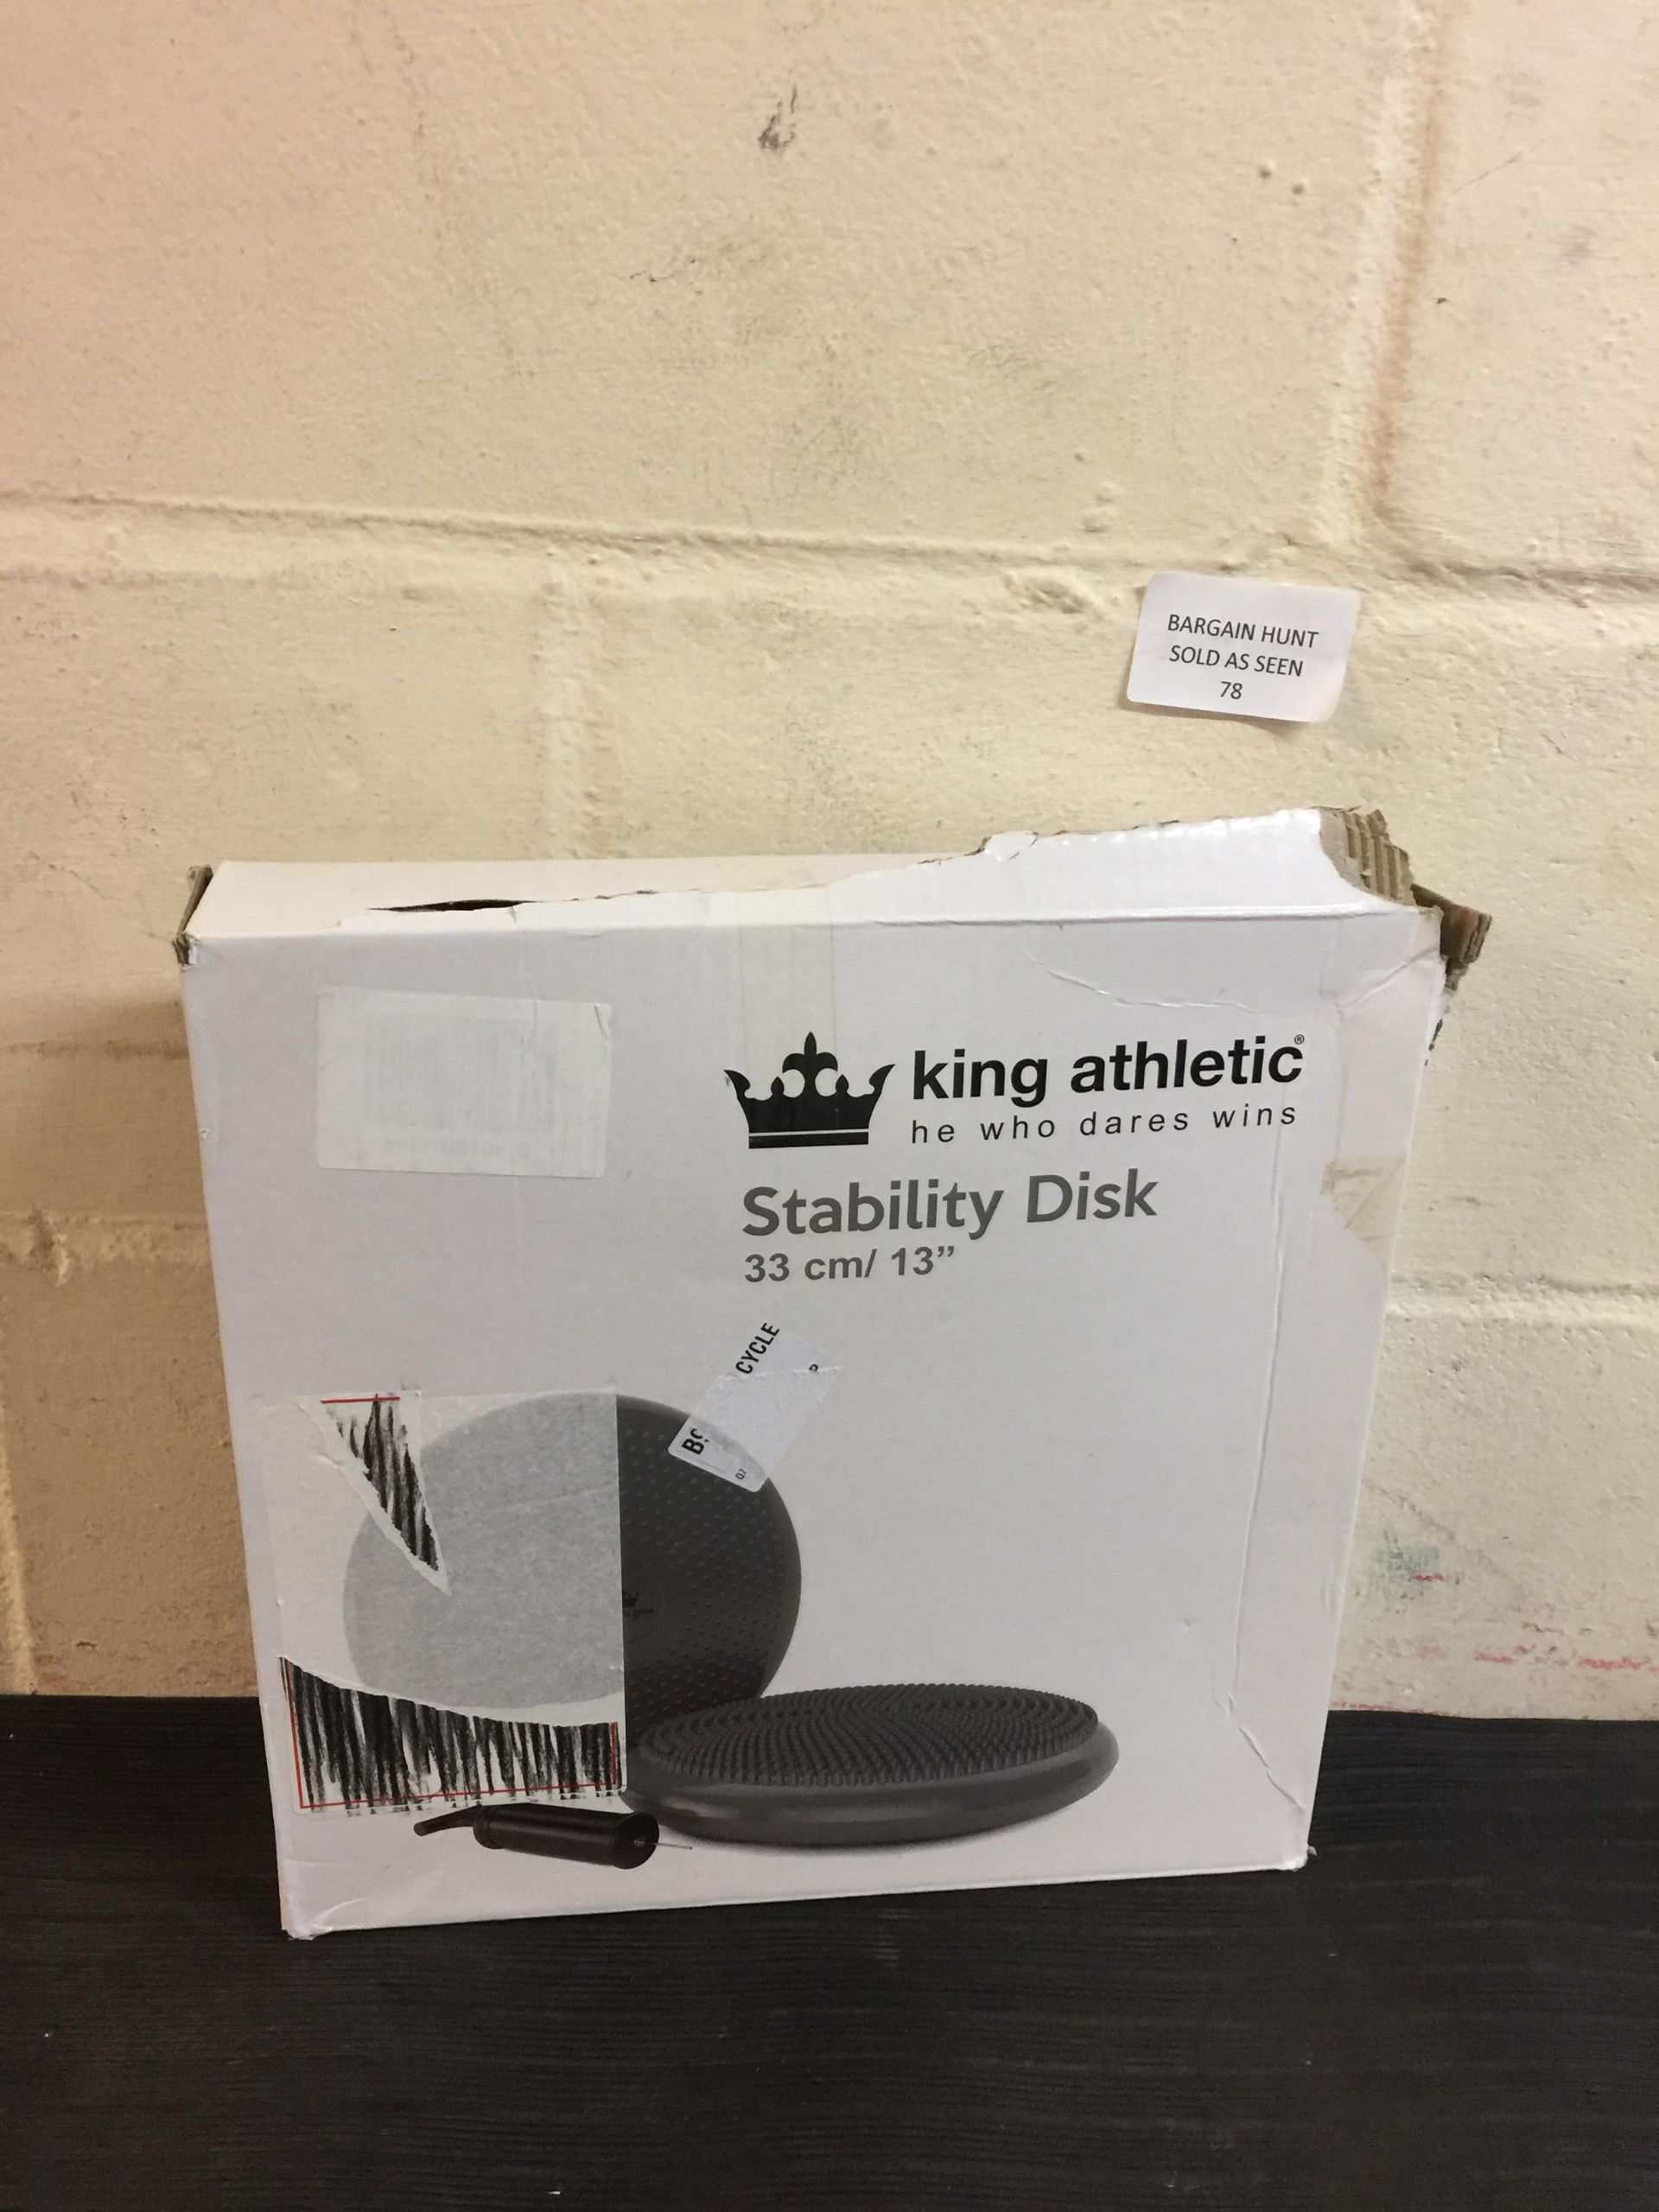 Lot 78 - King Athletic Stability Disk